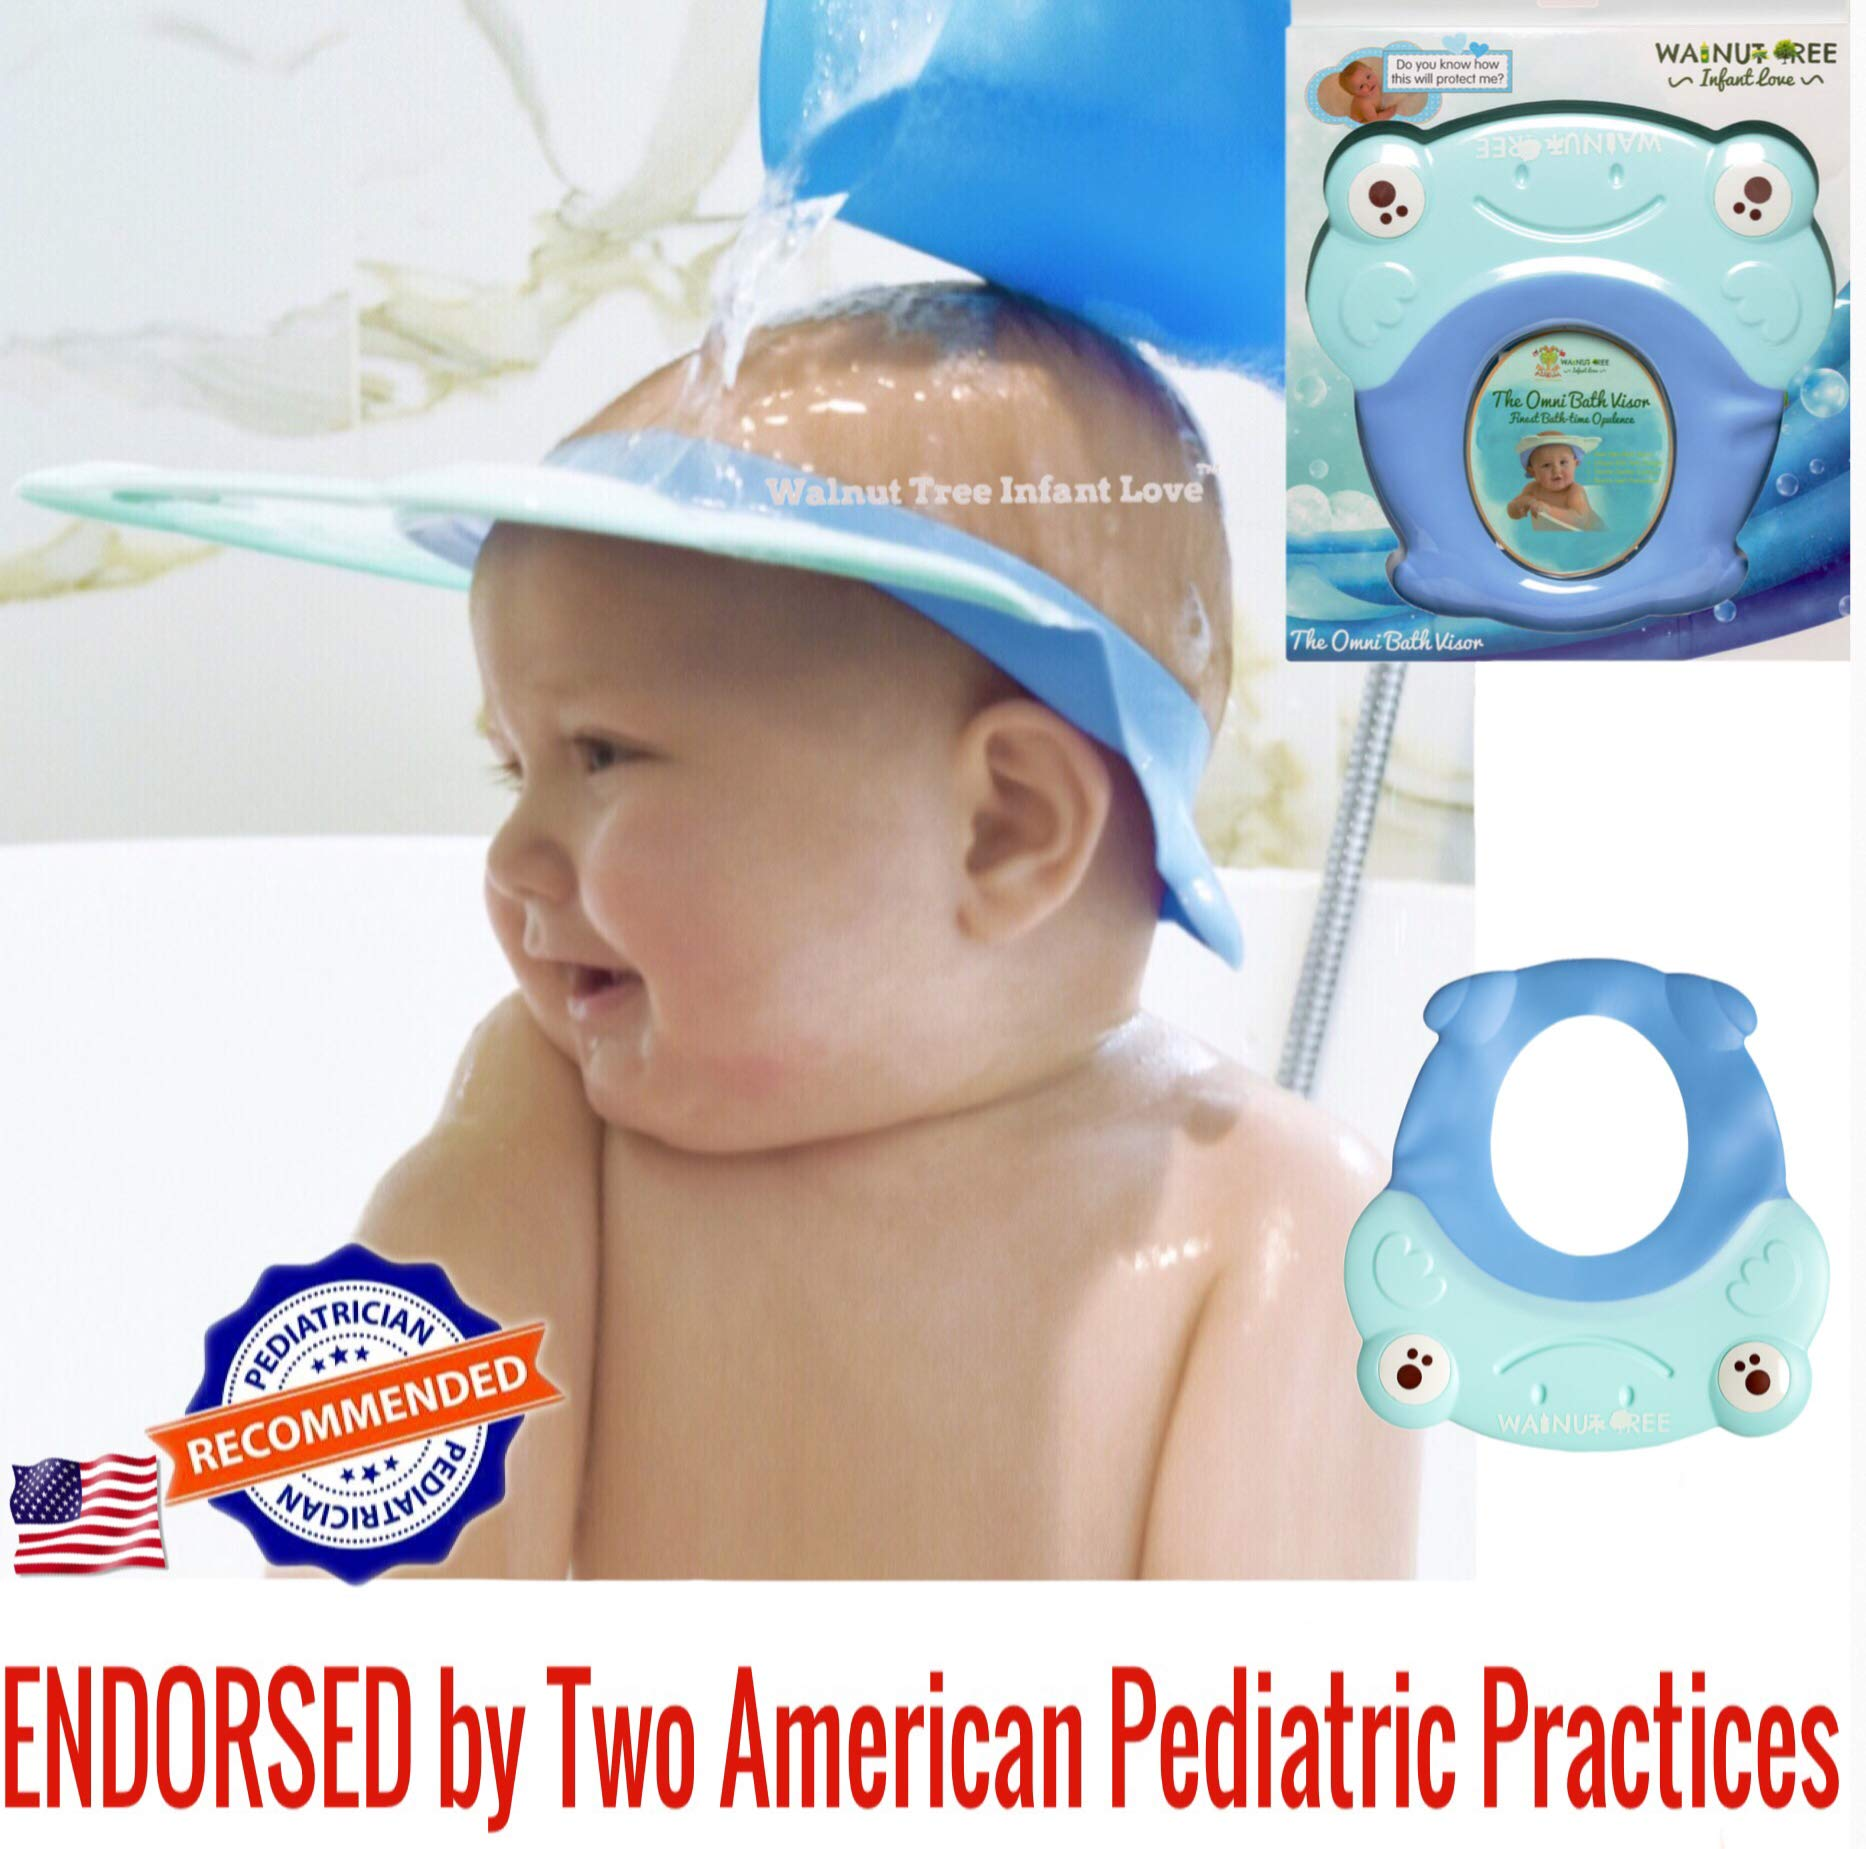 Walnut Tree Omni Bath Shower Visor Protection Soft Cap for Shower and Bath Time Safety for Toddlers, Baby and Children [11 Months Old+ Recommended] (Sky Blue)